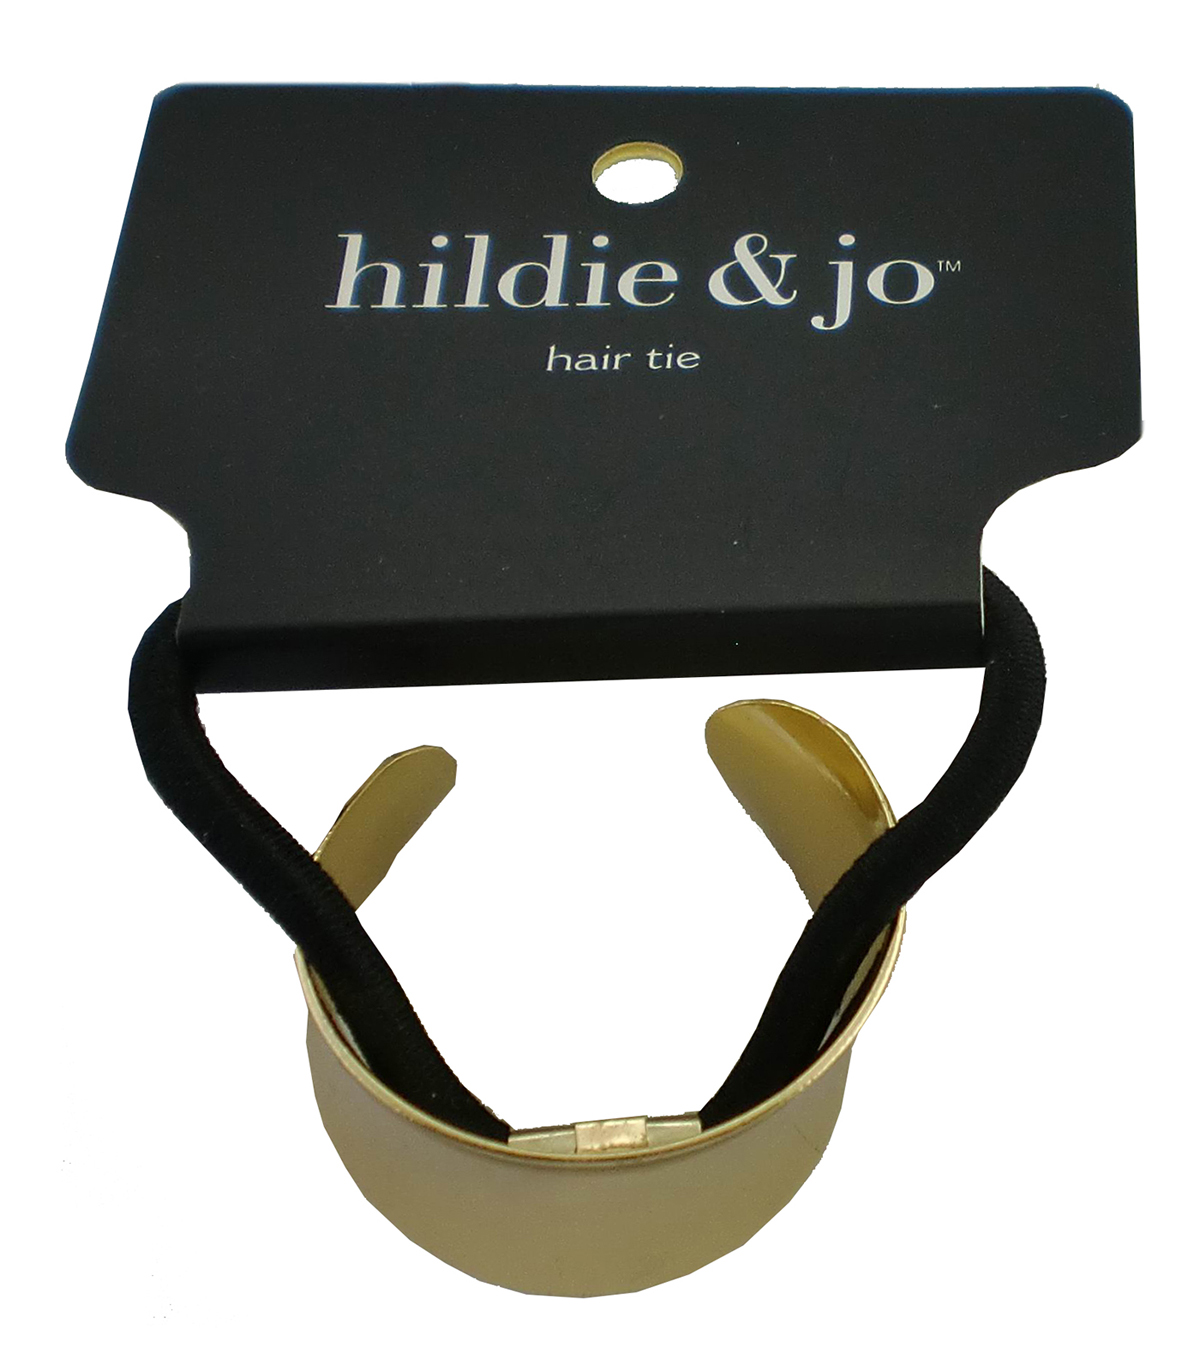 hildie & jo Black Ponytail Hair Tie with Gold Curved Cuff